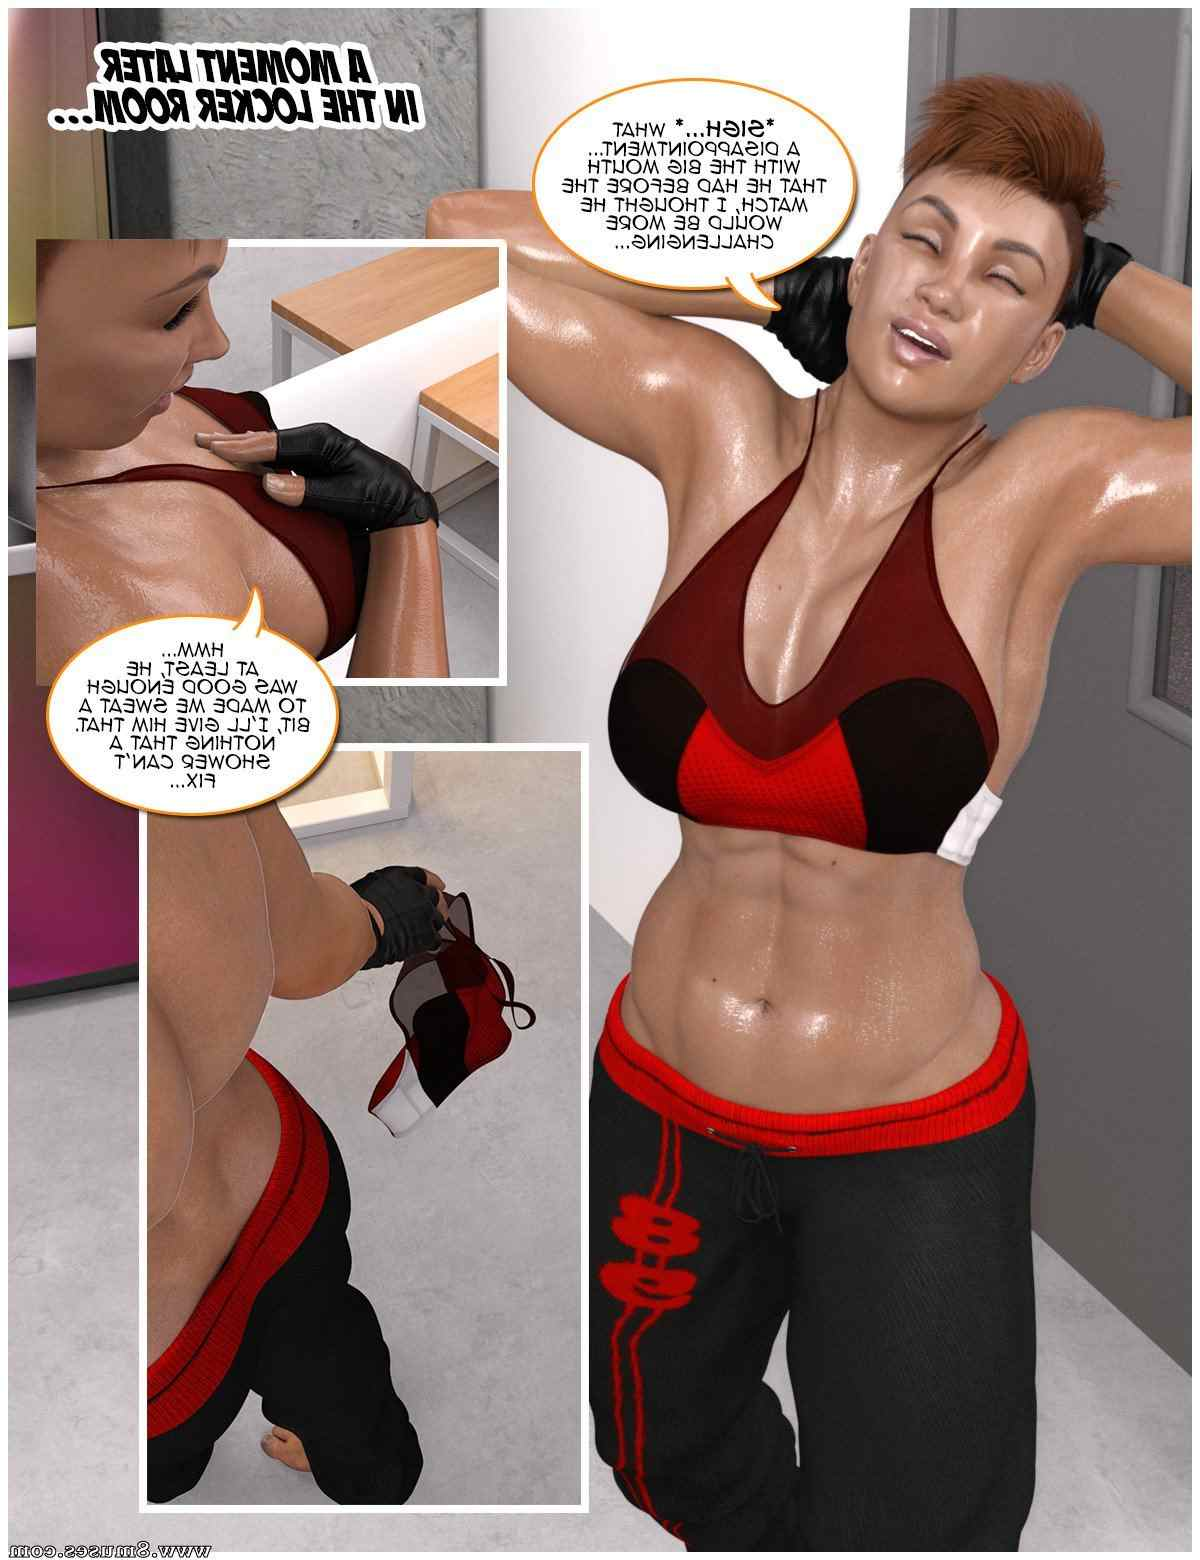 Pinkparticles-Comics/The-Strongest-Bond The_Strongest_Bond__8muses_-_Sex_and_Porn_Comics_8.jpg